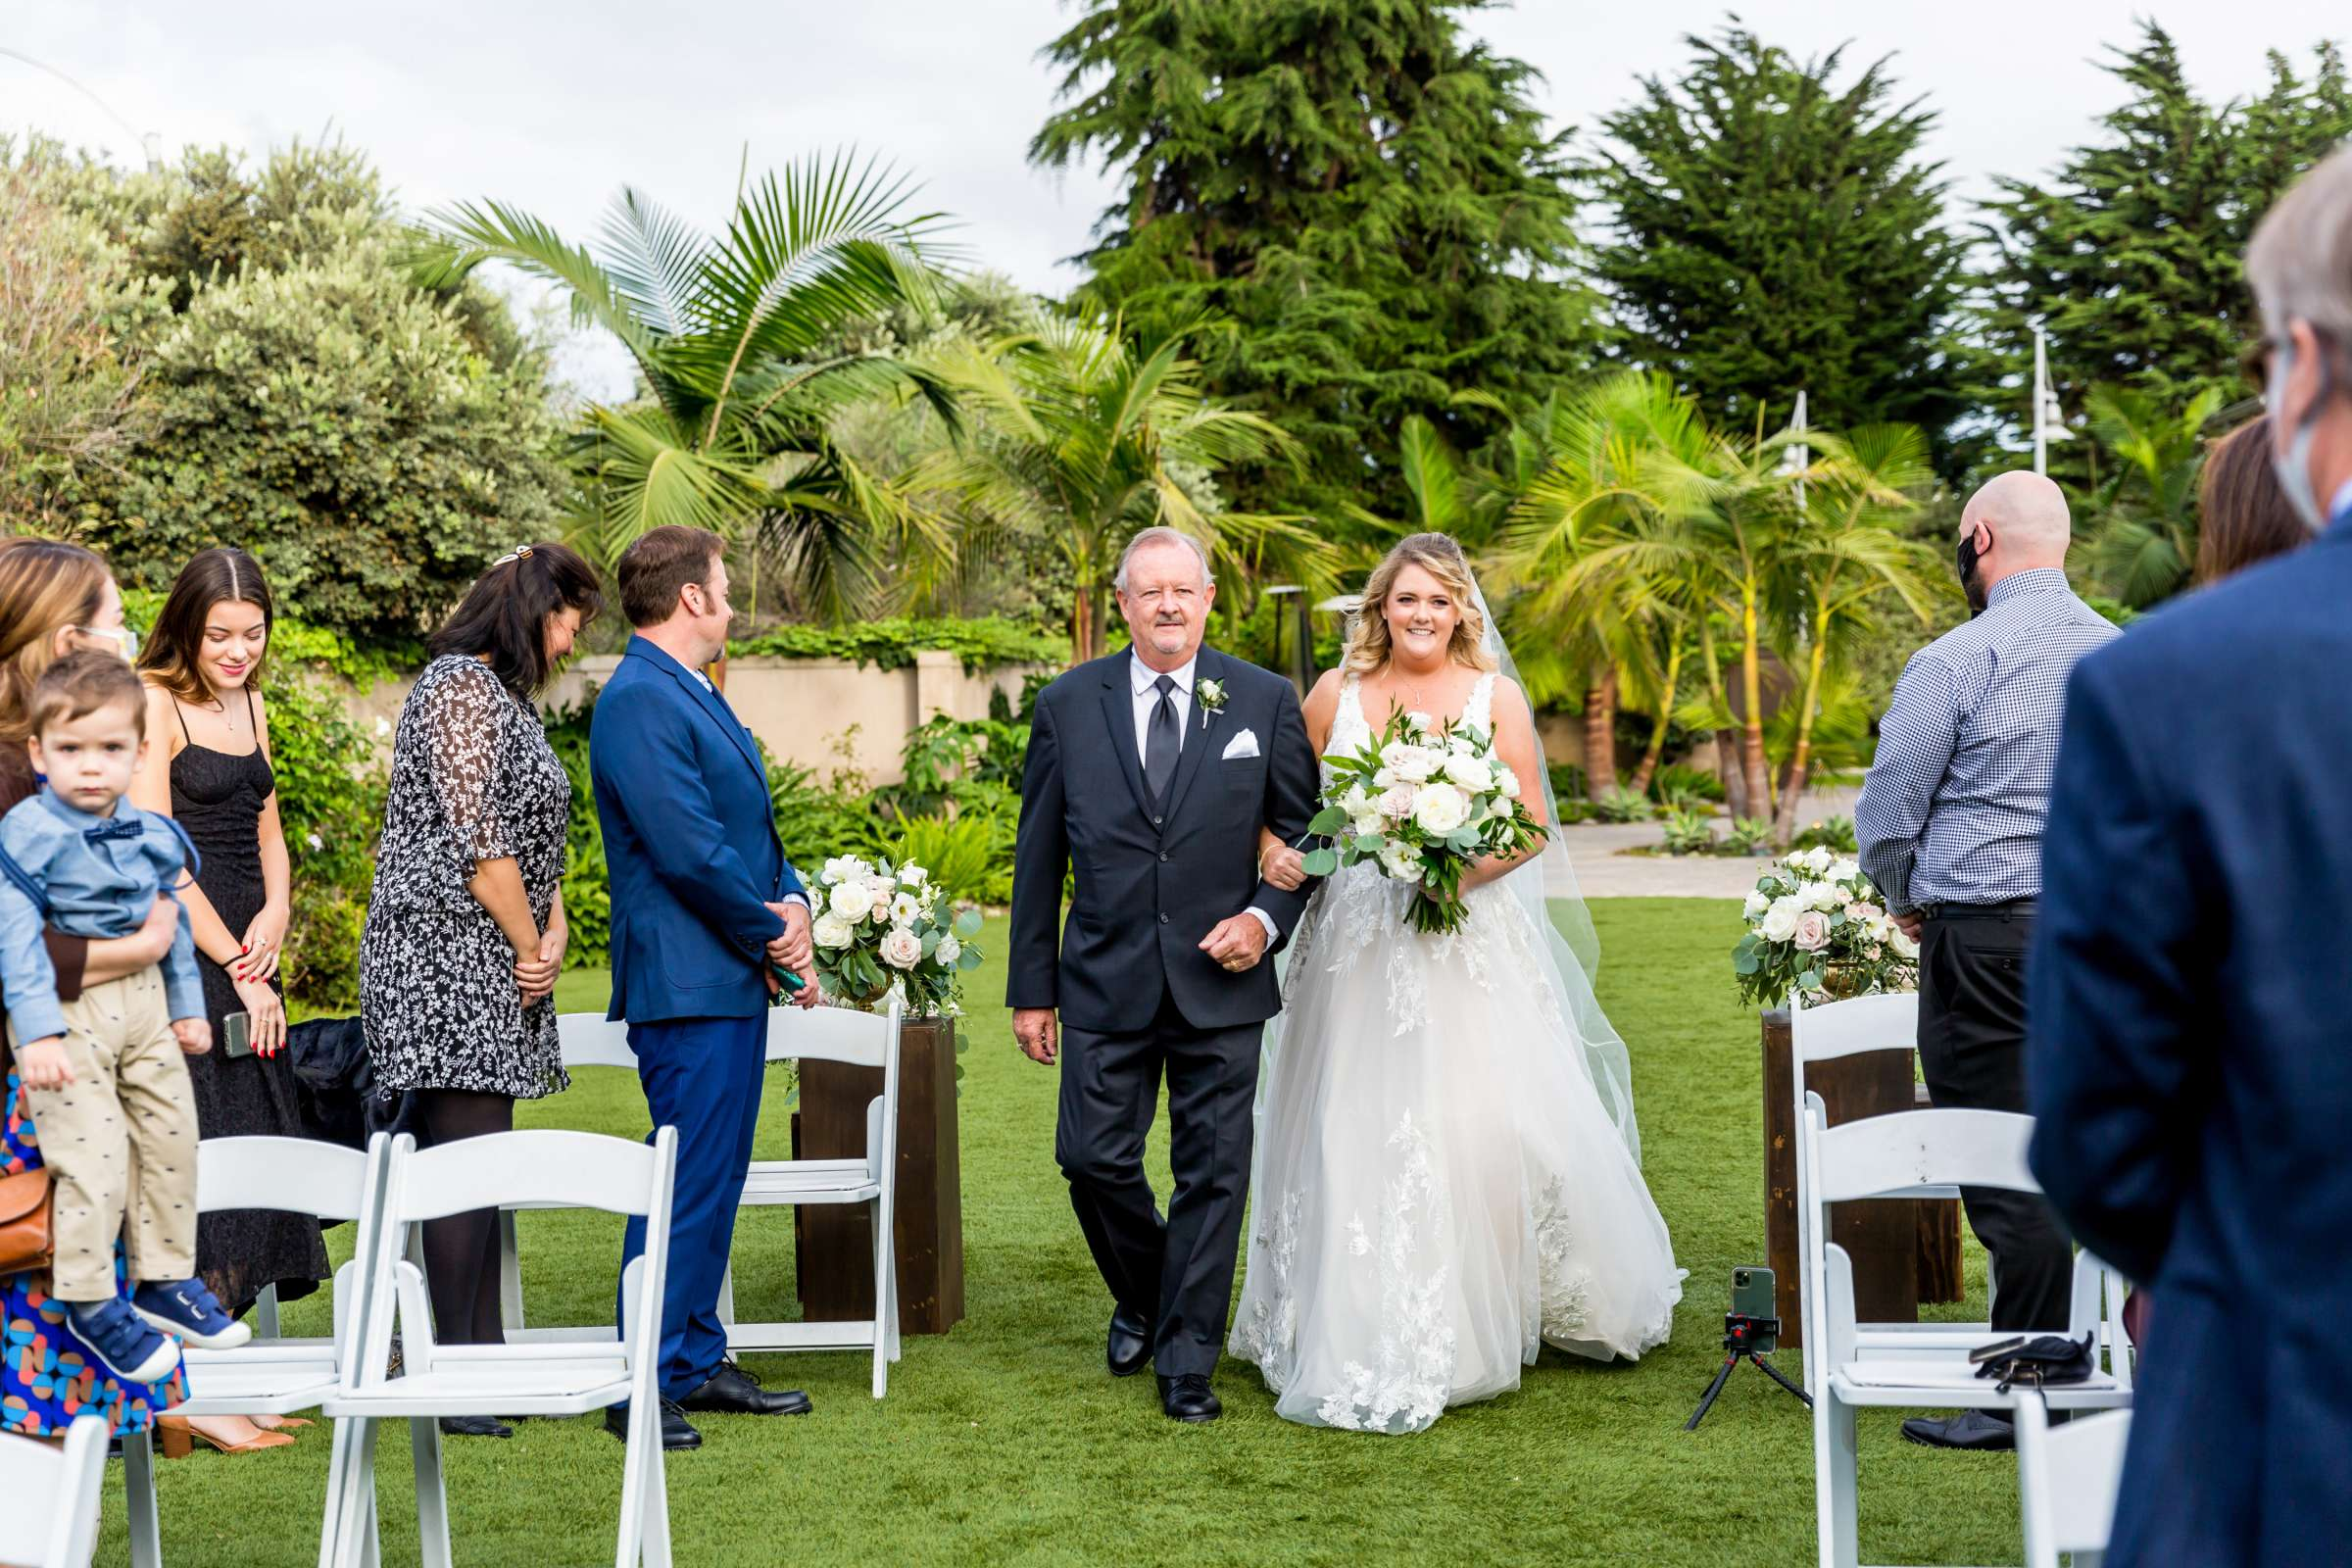 Cape Rey Carlsbad, A Hilton Resort Wedding, Michelle and Justin Wedding Photo #56 by True Photography